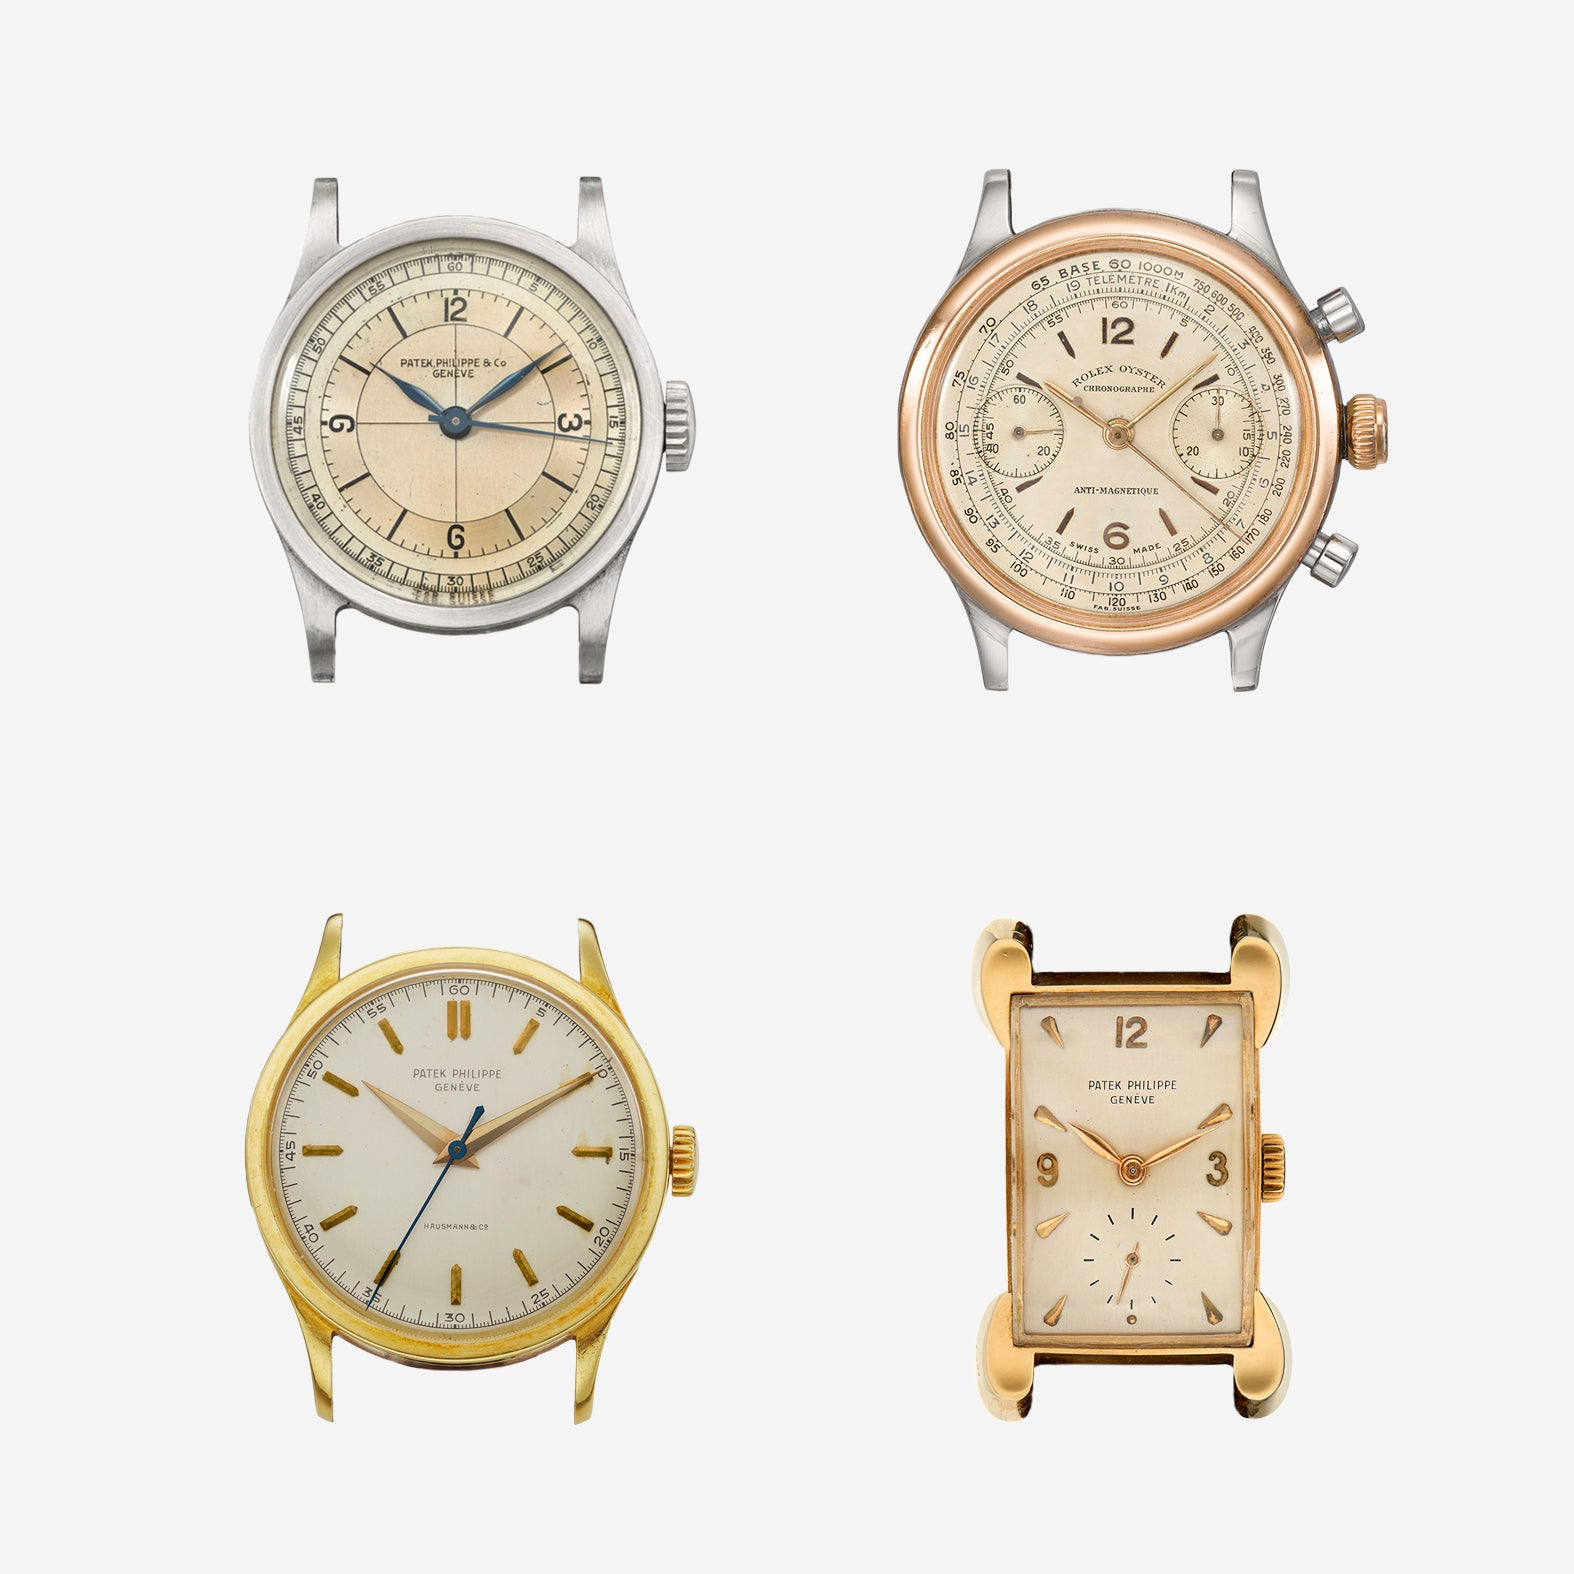 Grid of 4 watches owned by Andy Warhol in Understanding Andy Warhol as a collector for A Collected Man